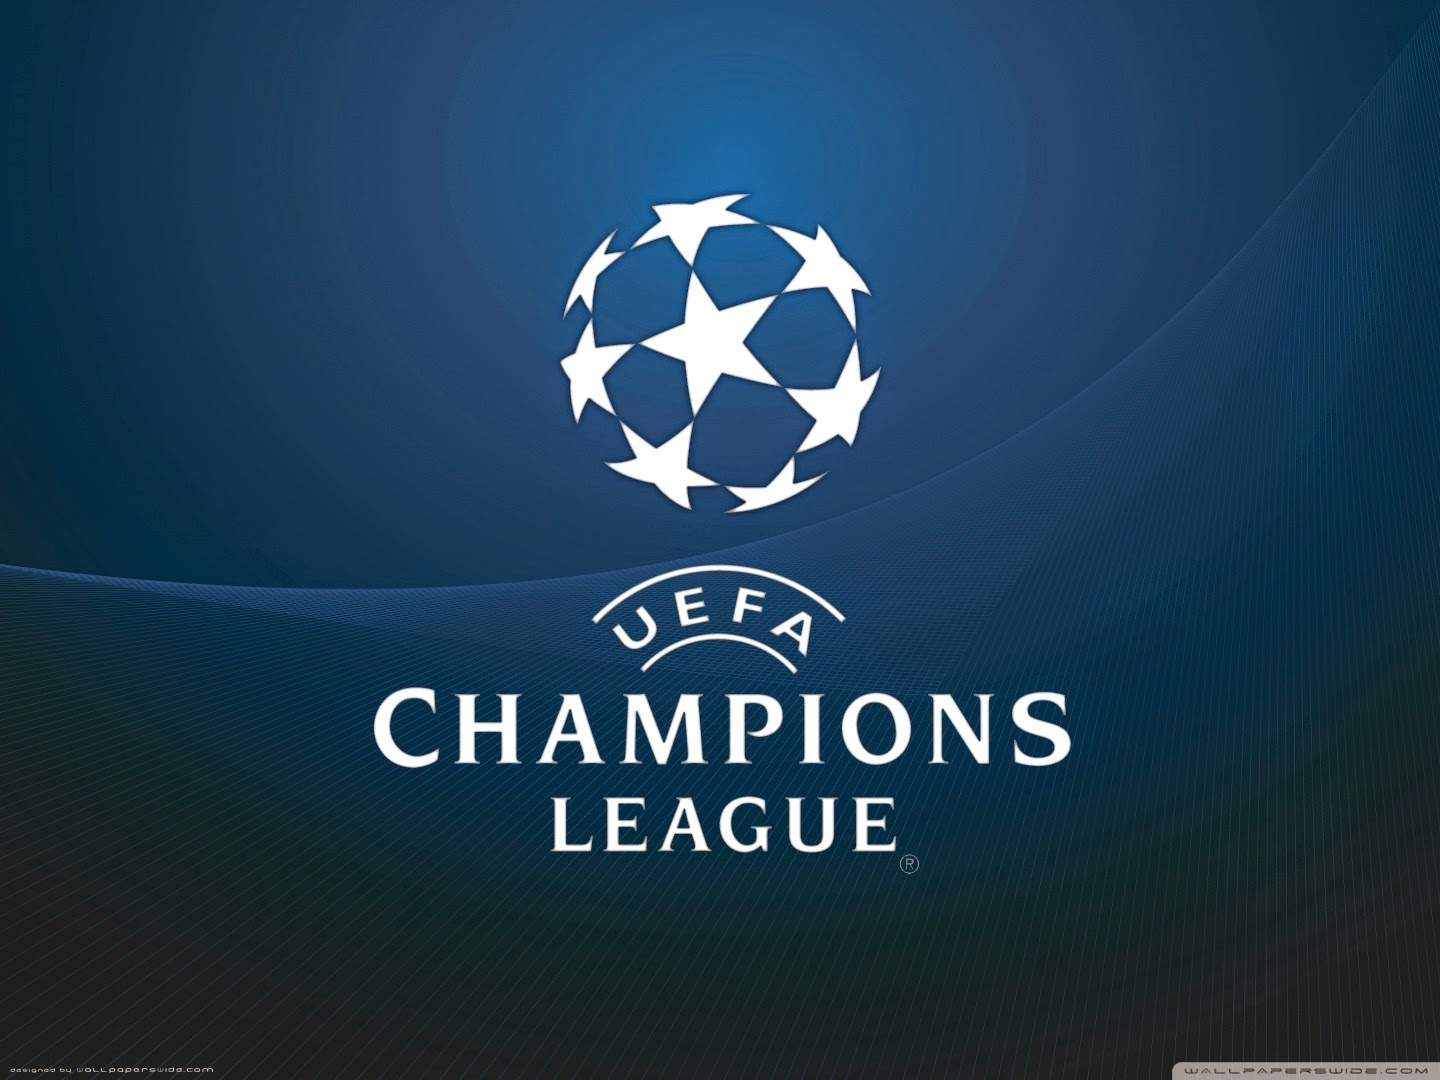 UEFA Champions League 2015 Free-To-Air Broadcasting Channels